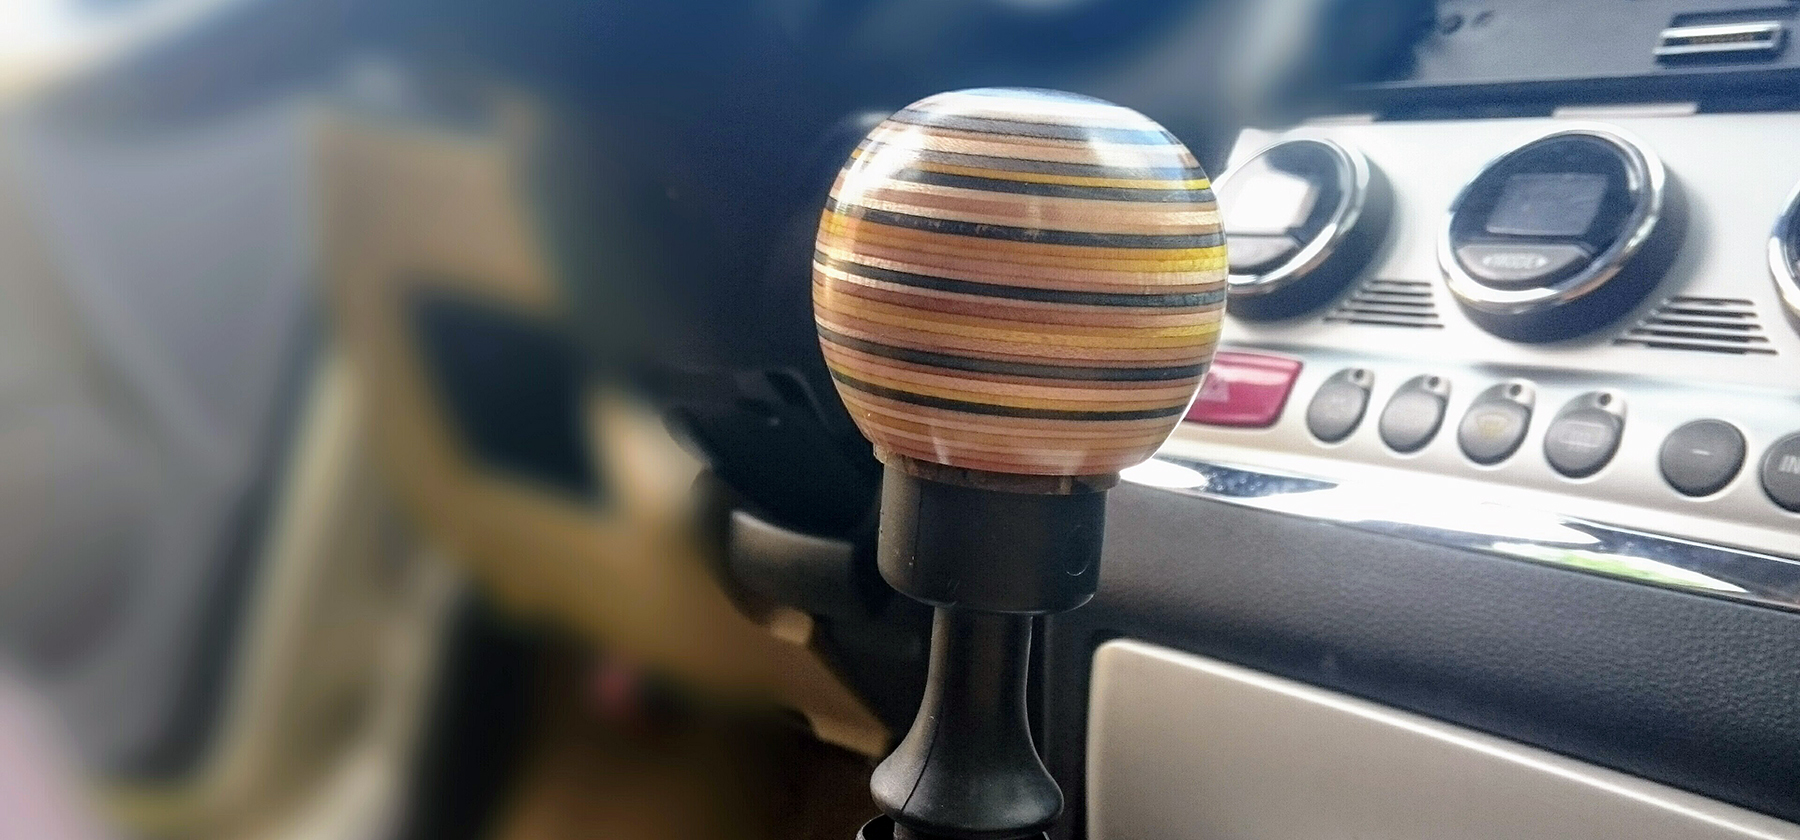 Alfa Romeo Shift Knob CDIY - Alfa romeo shift knob